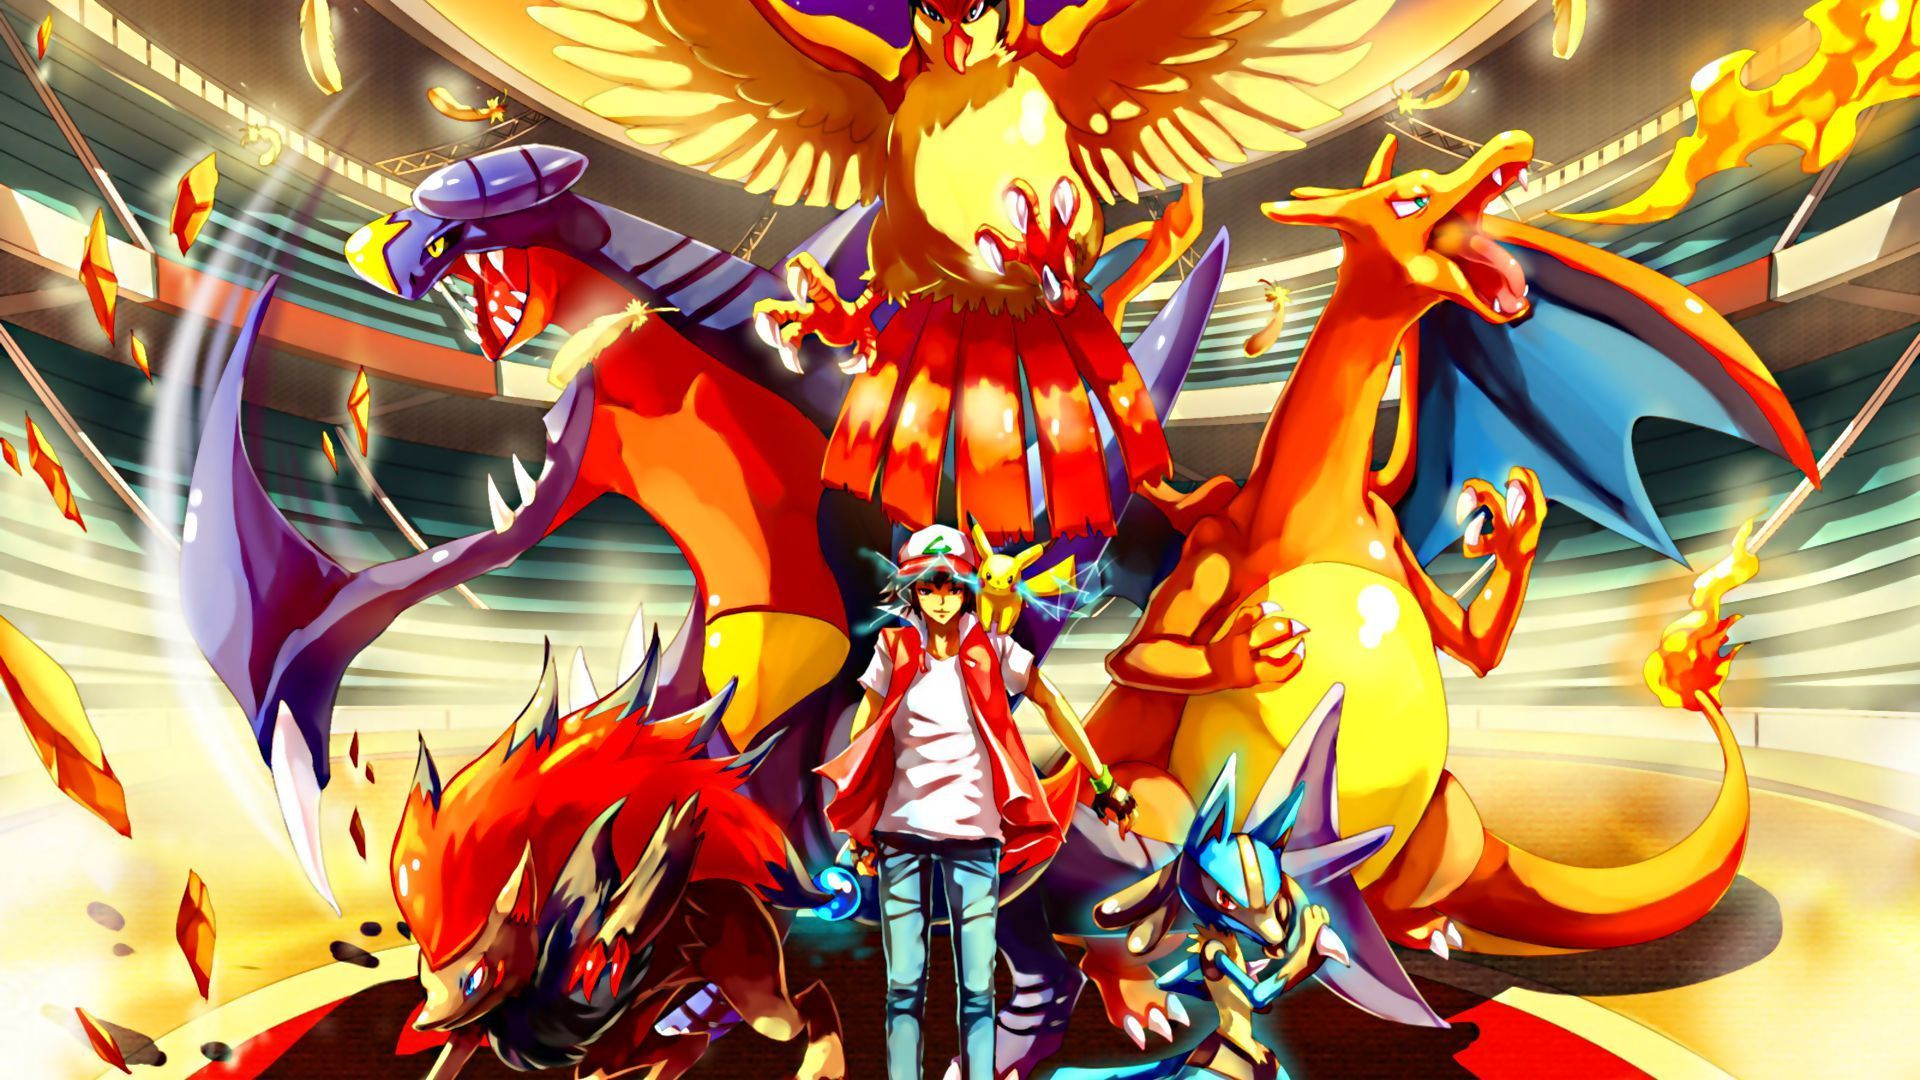 Pokemon Pictures That Are 2048 By 1152 Pixels: Pokemon Wallpapers Free Download 2048×1152 Free Download